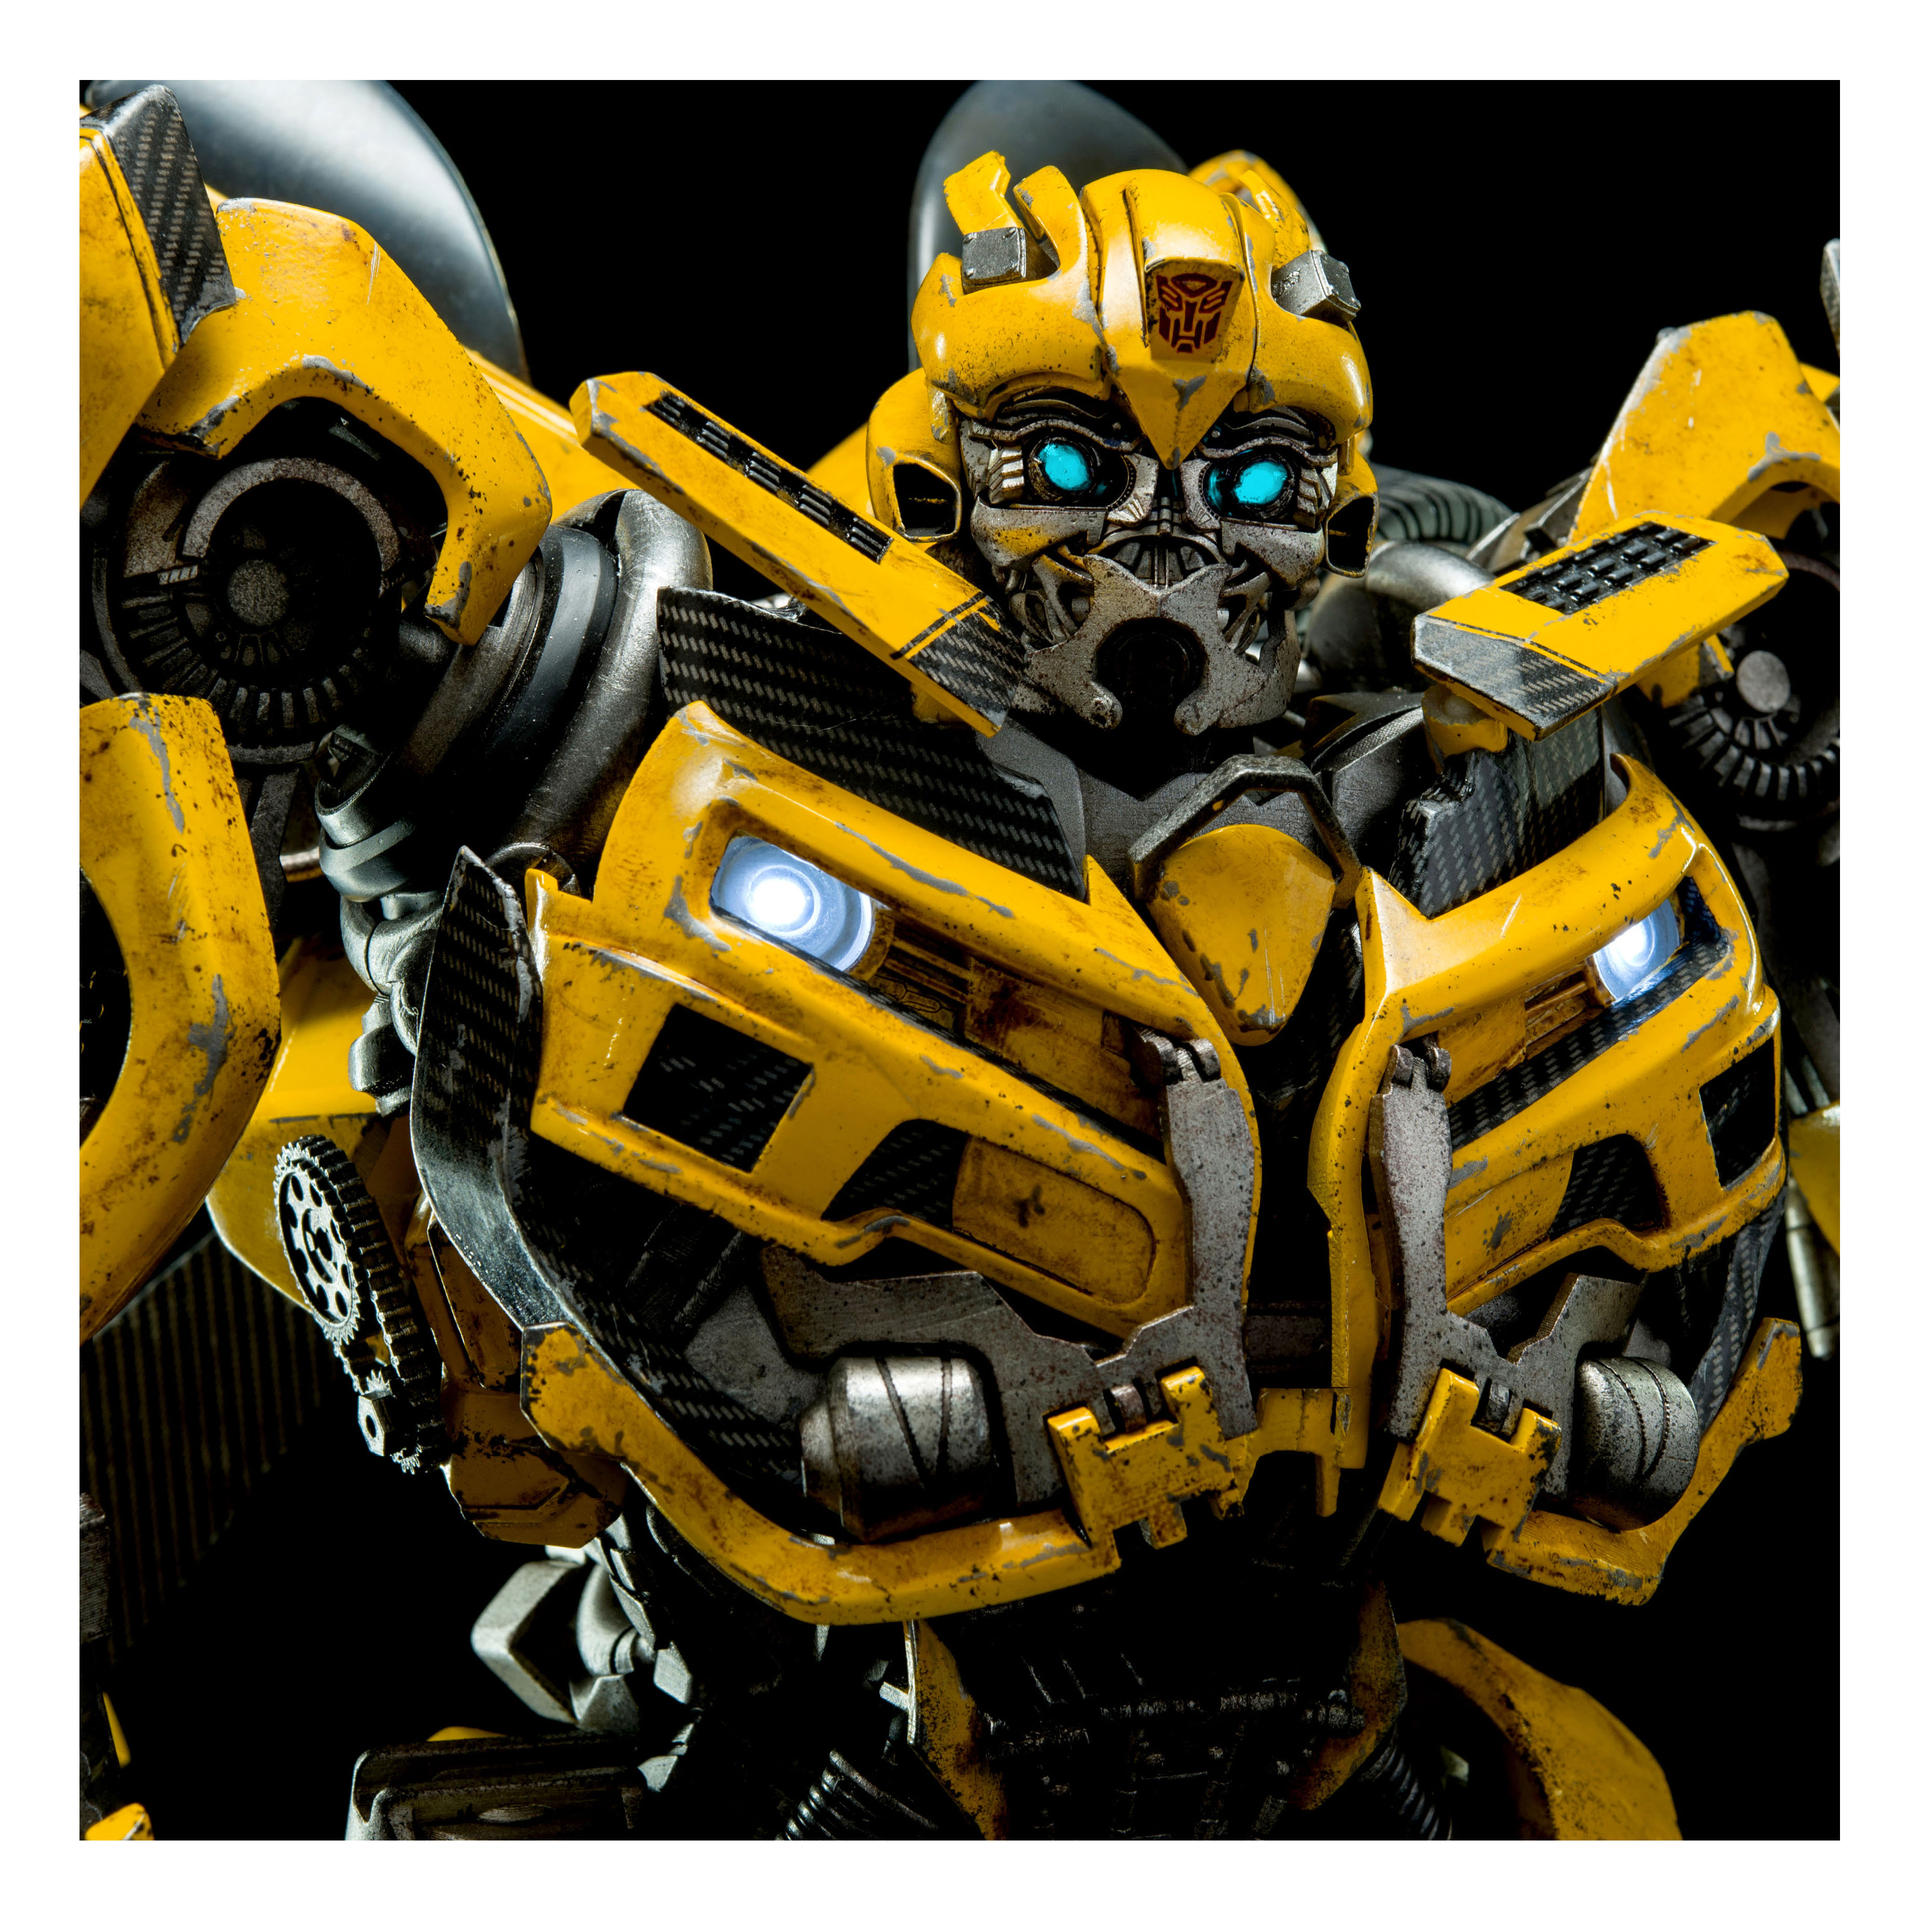 new images and info of 3a transformers dark of the moon bumblebee